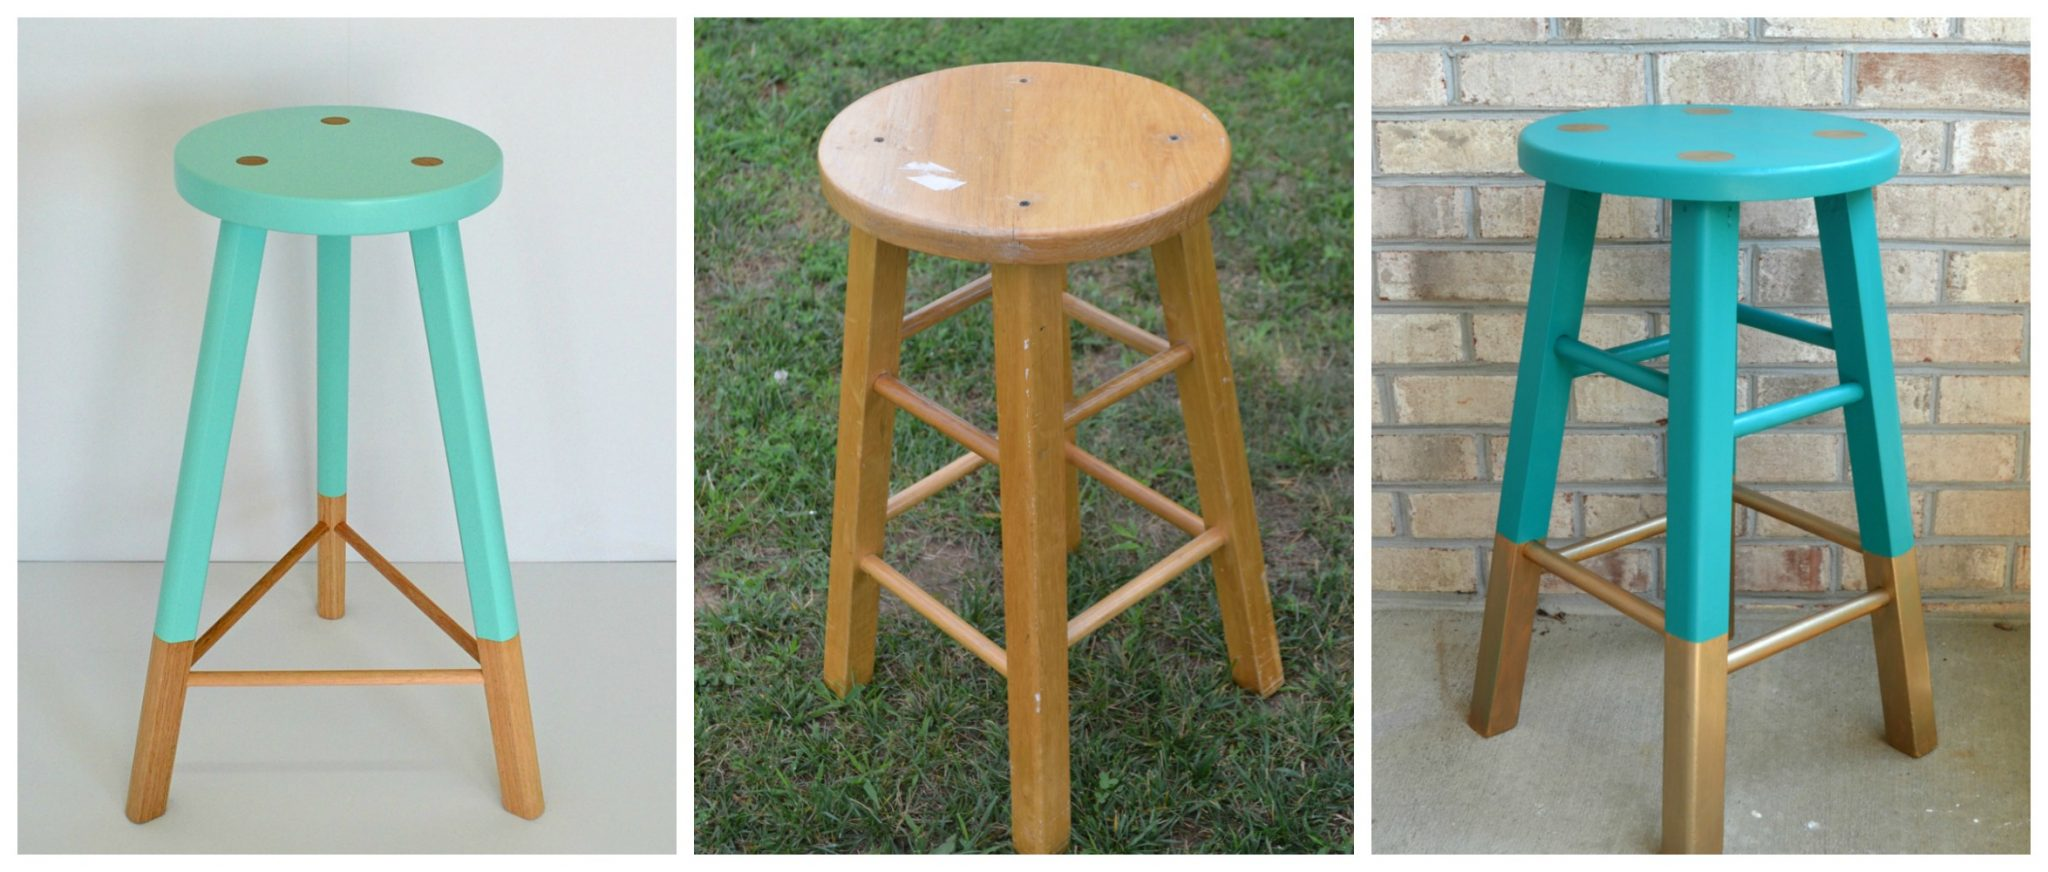 Stool Collage